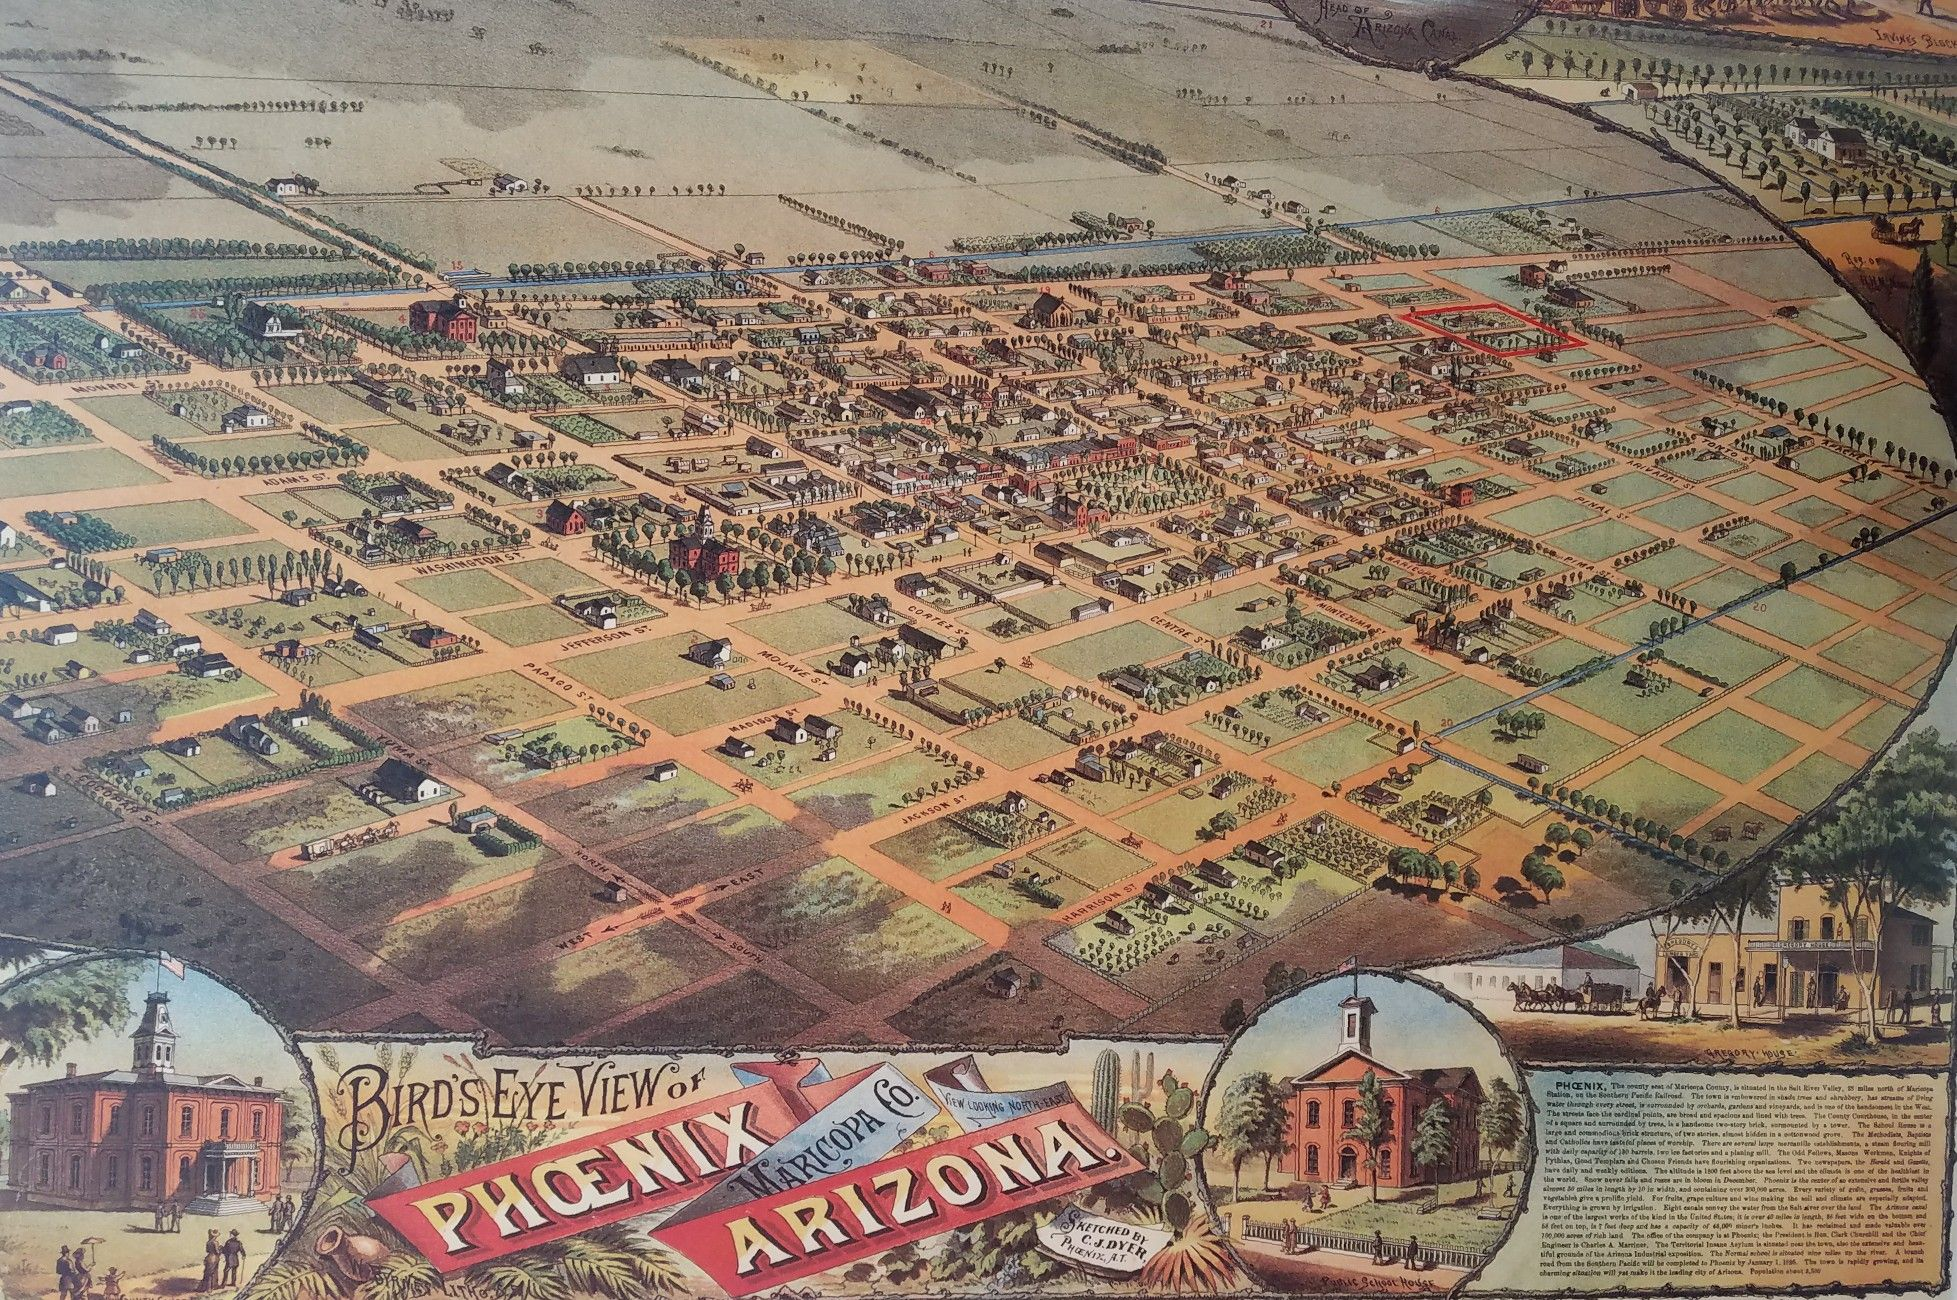 Bird's Eye View of Phoenix, turn of the 20th century. Heritage Square.